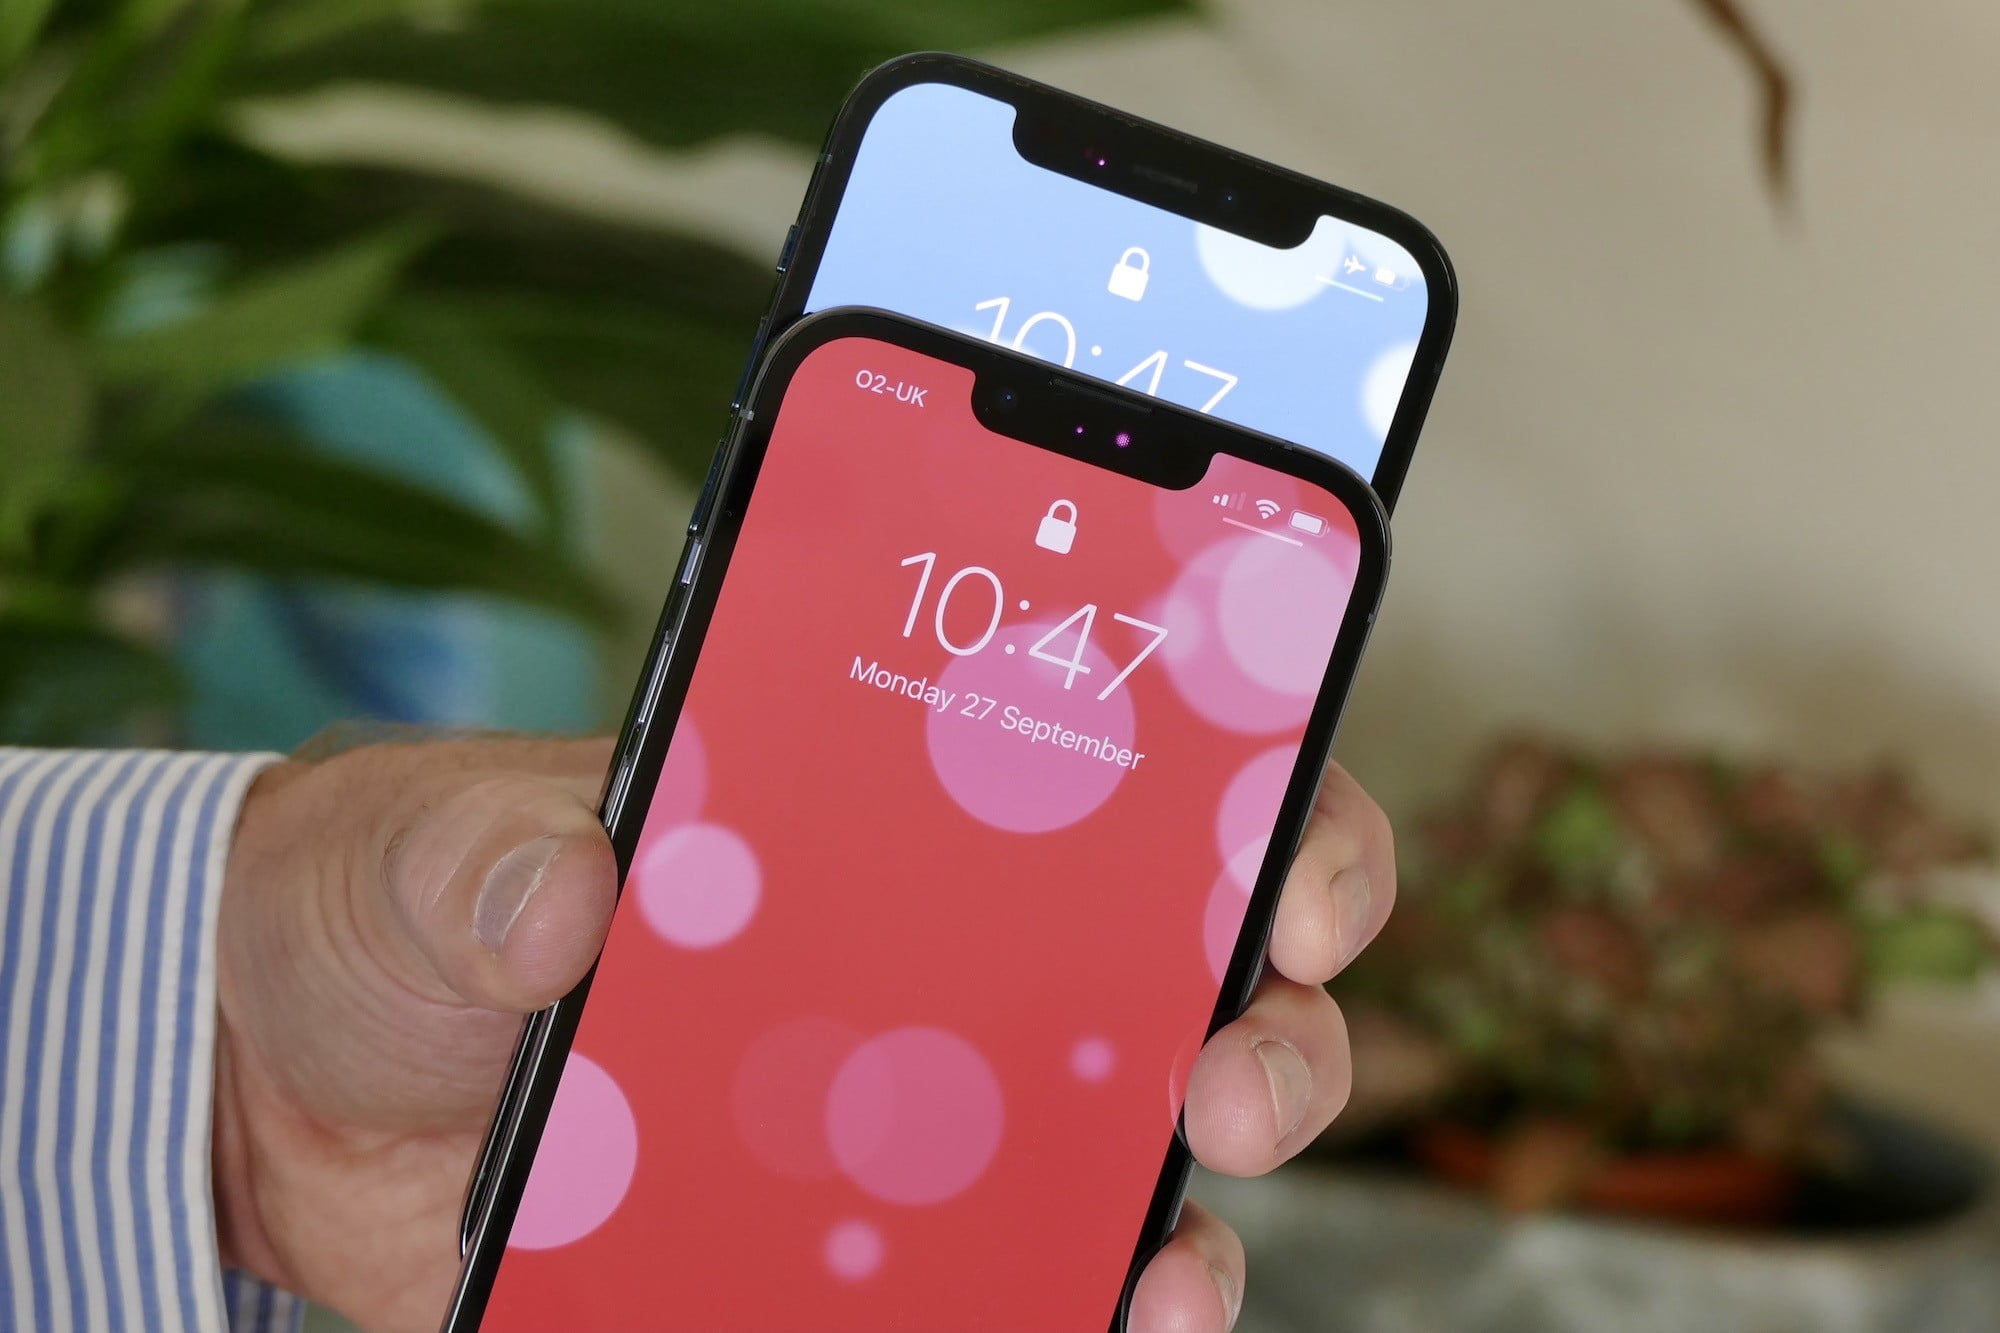 iPhone 13 Pro's smaller notch compared to the iPhone 12 Pro's larger notch.